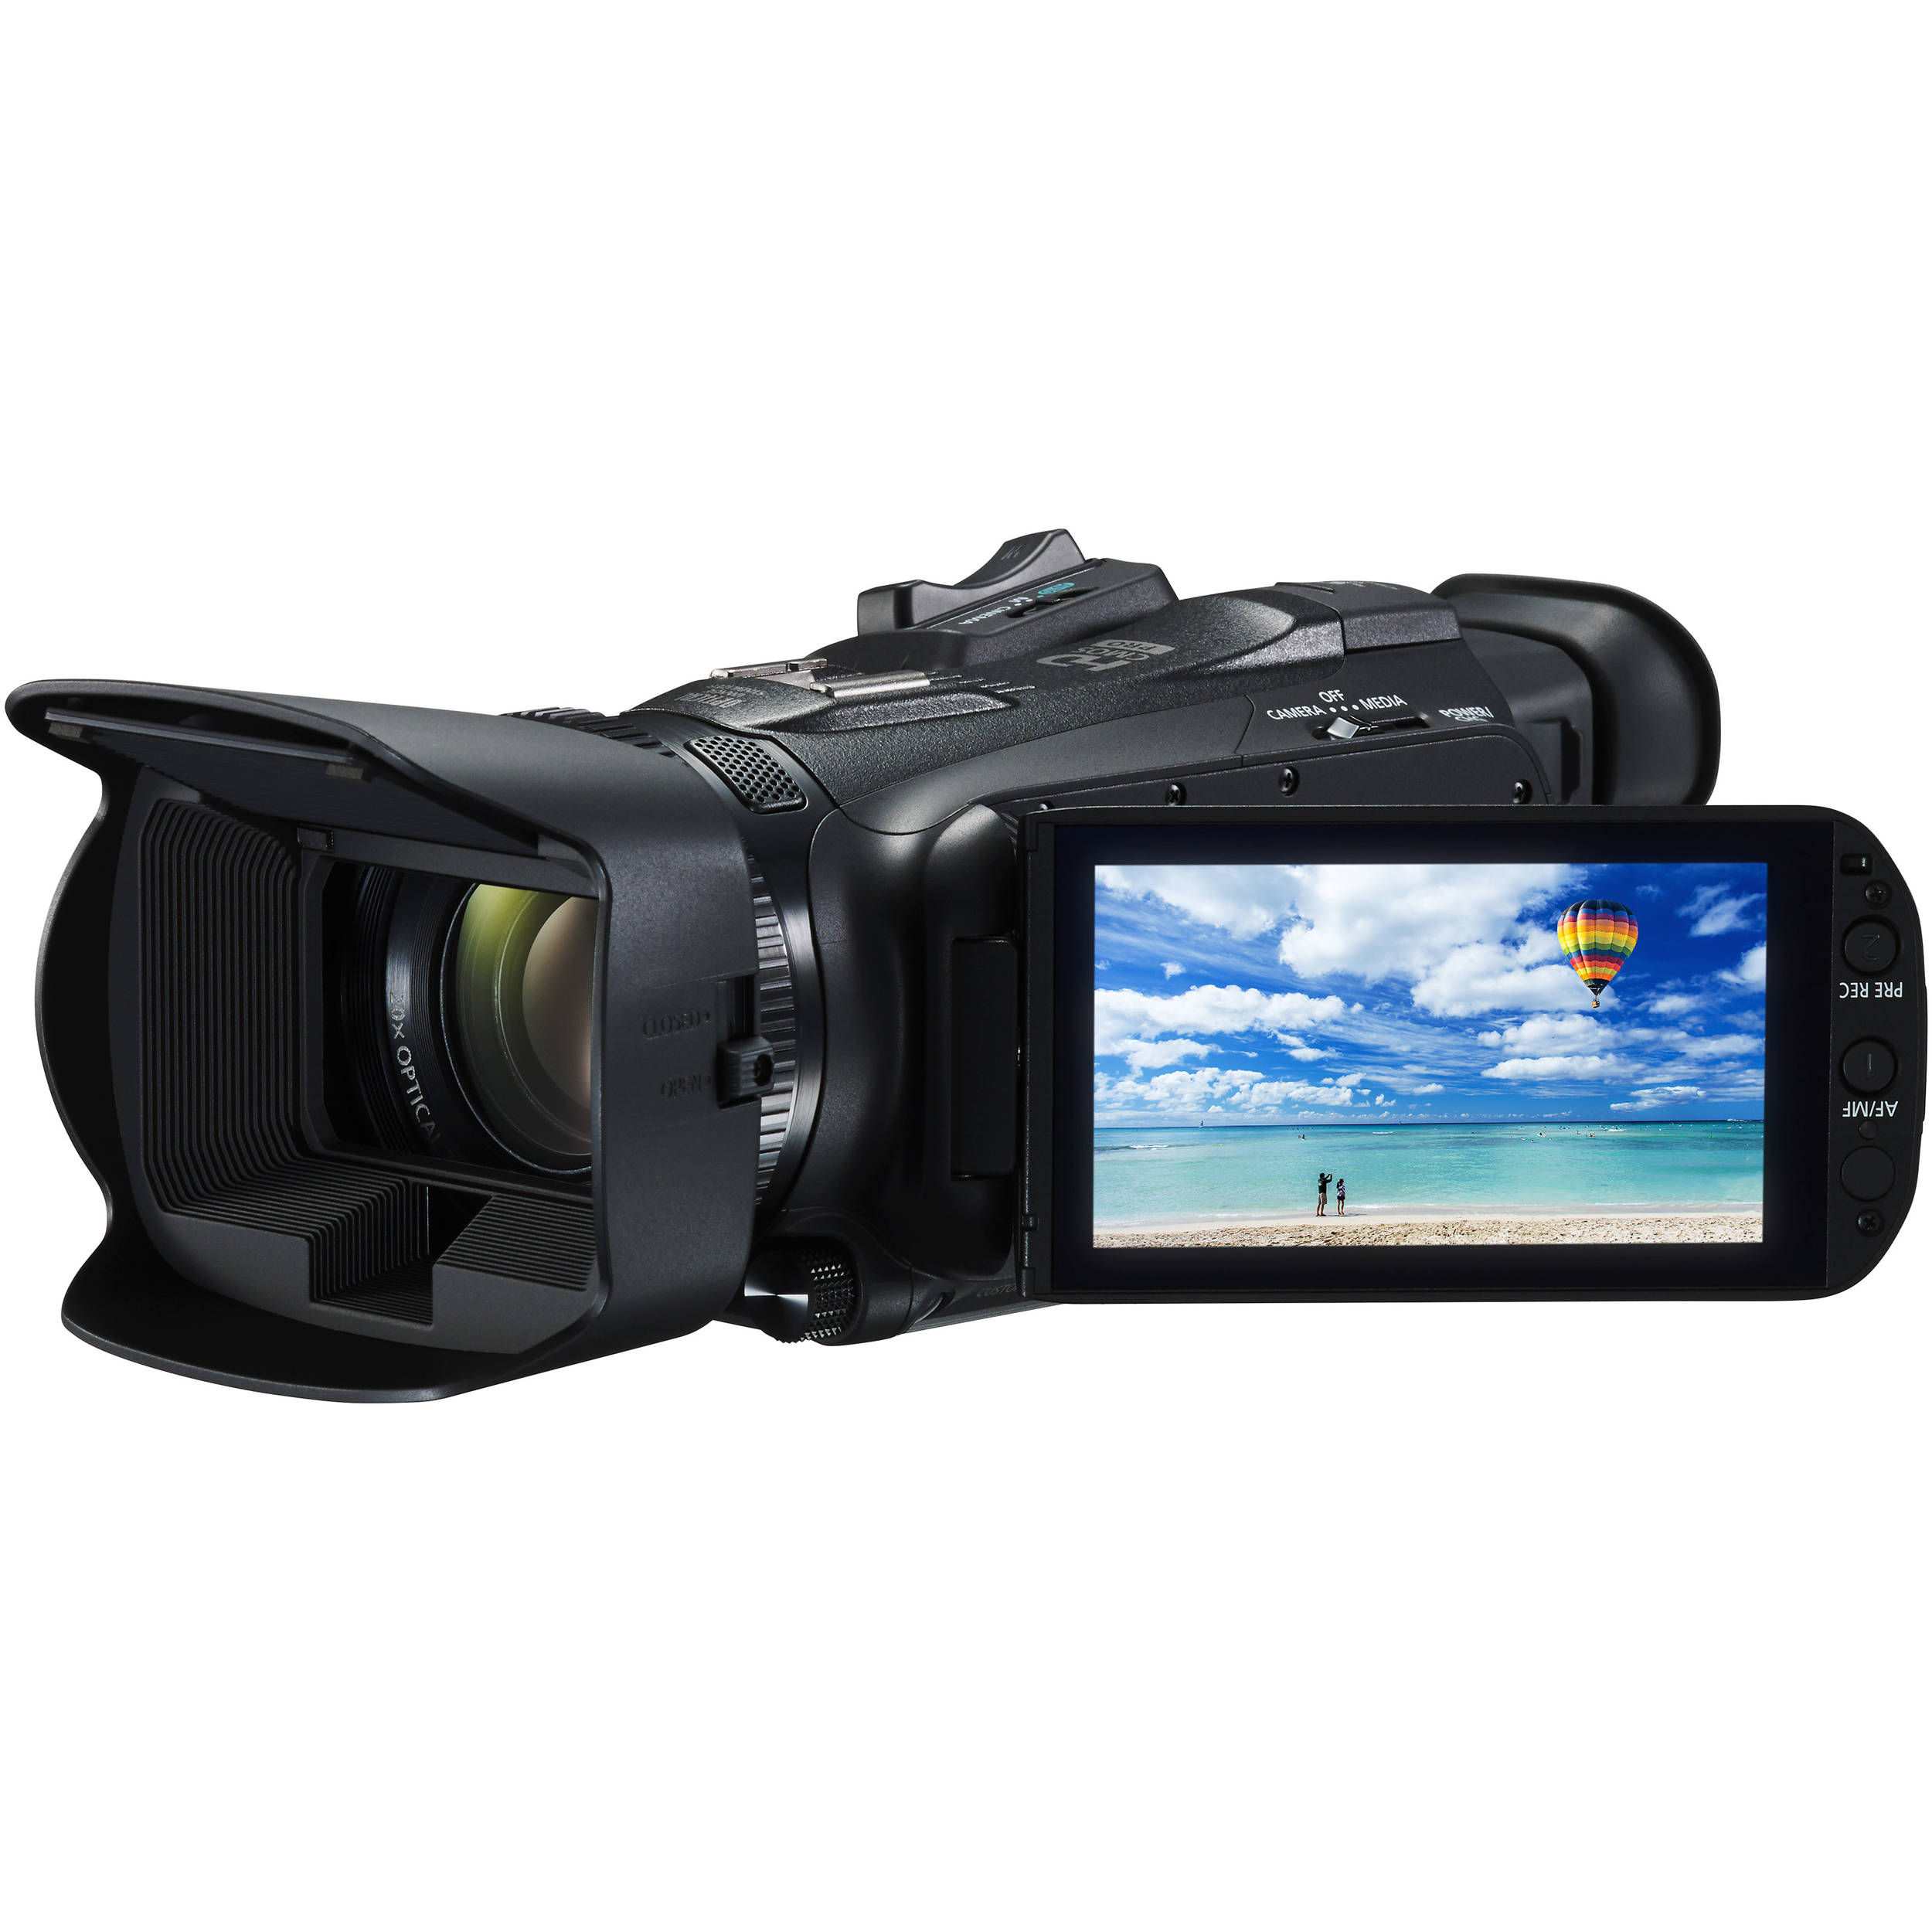 canon vixia hf g40 full hd camcorder 1005c002 b&h photo video